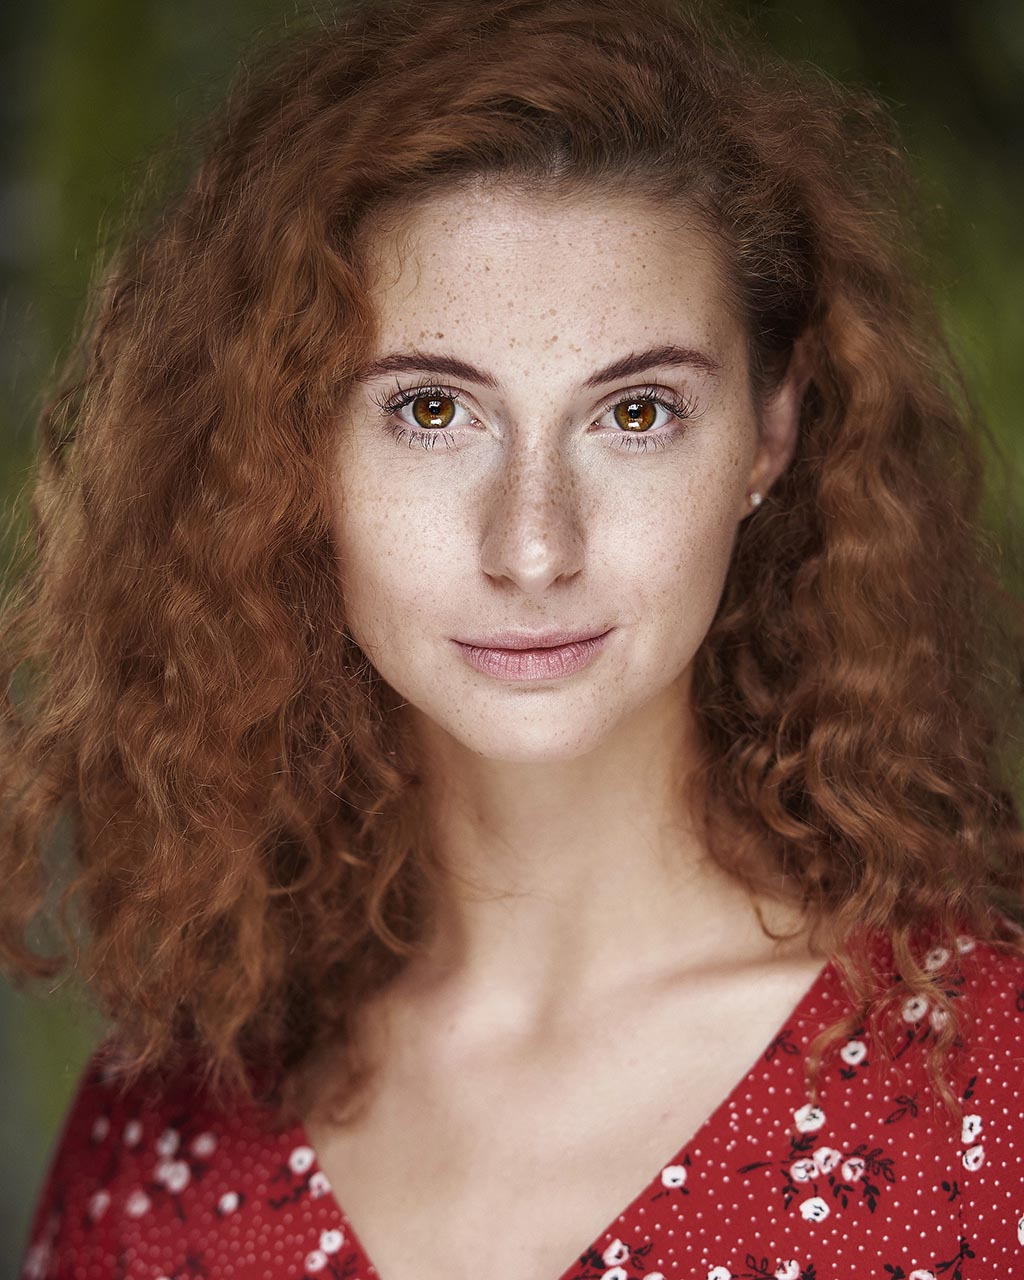 MAD Photography London Actress Headshot Laura King Spotlight Casting Head Shot